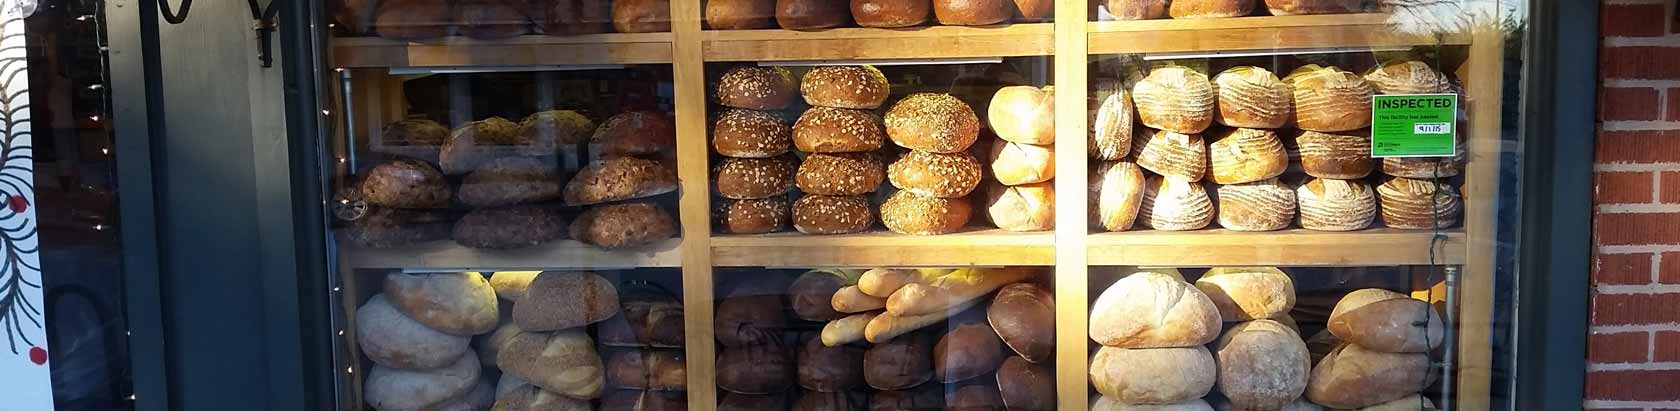 bread in Katzingers Delicatessen window